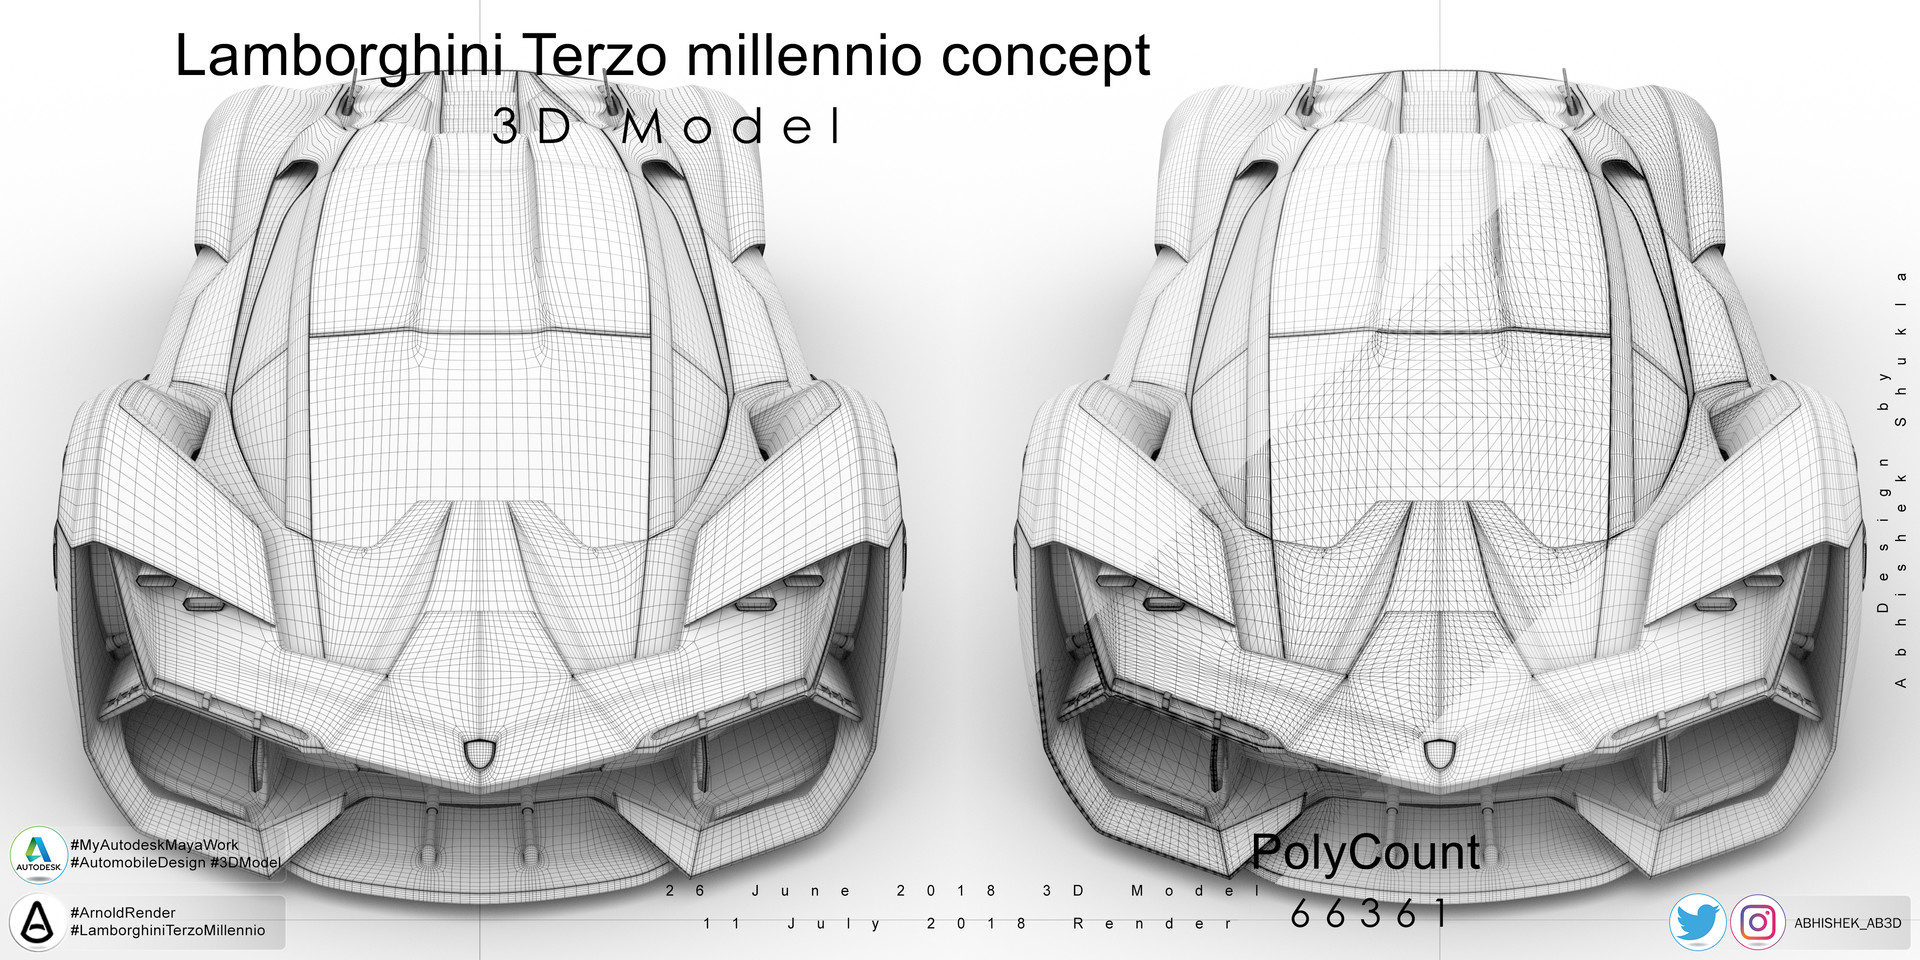 hight resolution of lamborghini terzo millennio 3d model front view as smooth polygon view with wireframe